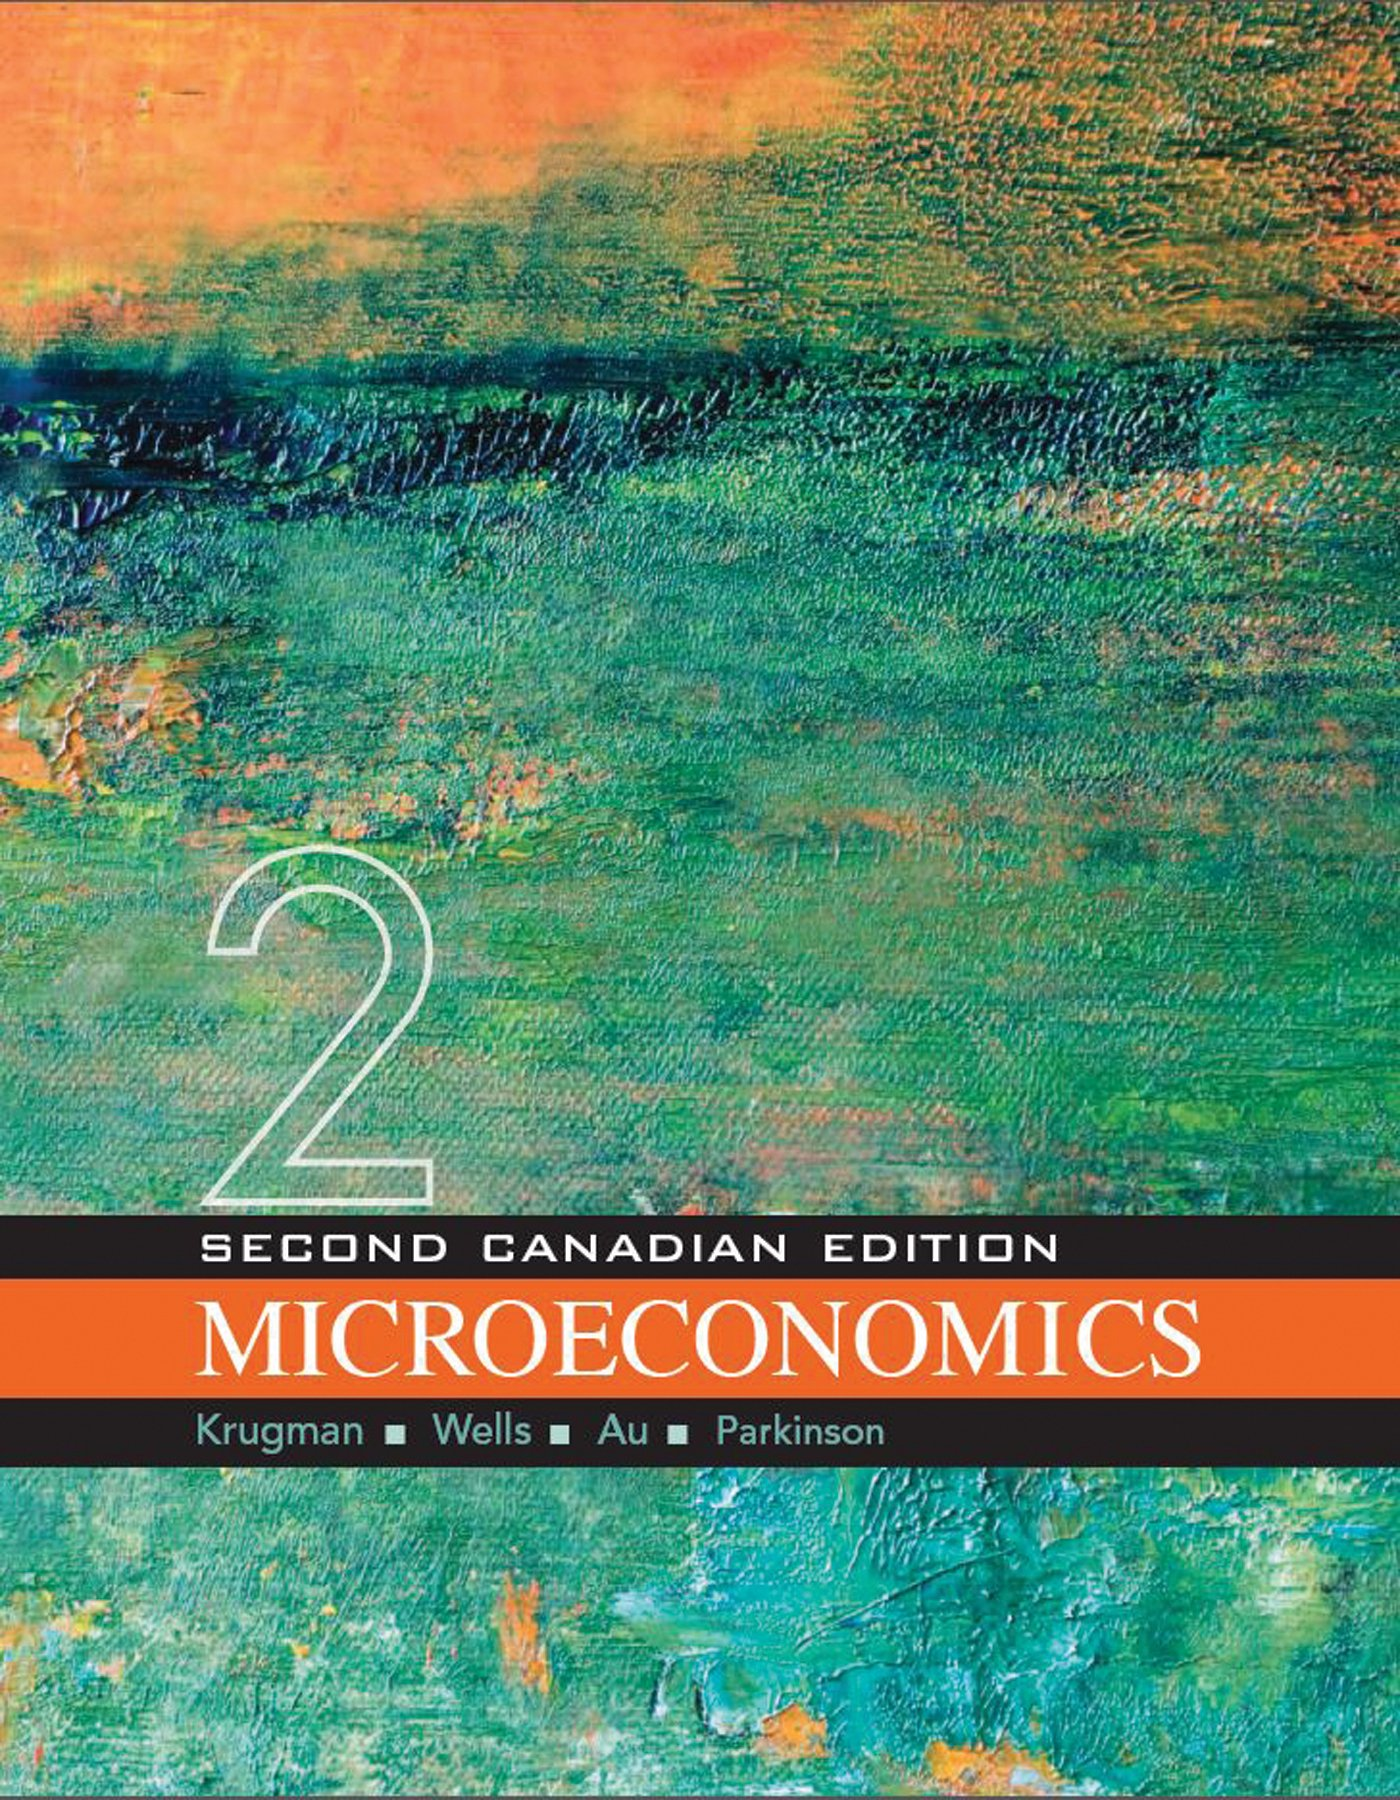 Microeconomics canadian edition paul krugman robin wells iris au microeconomics canadian edition paul krugman robin wells iris au 9781429240055 books amazon fandeluxe Gallery